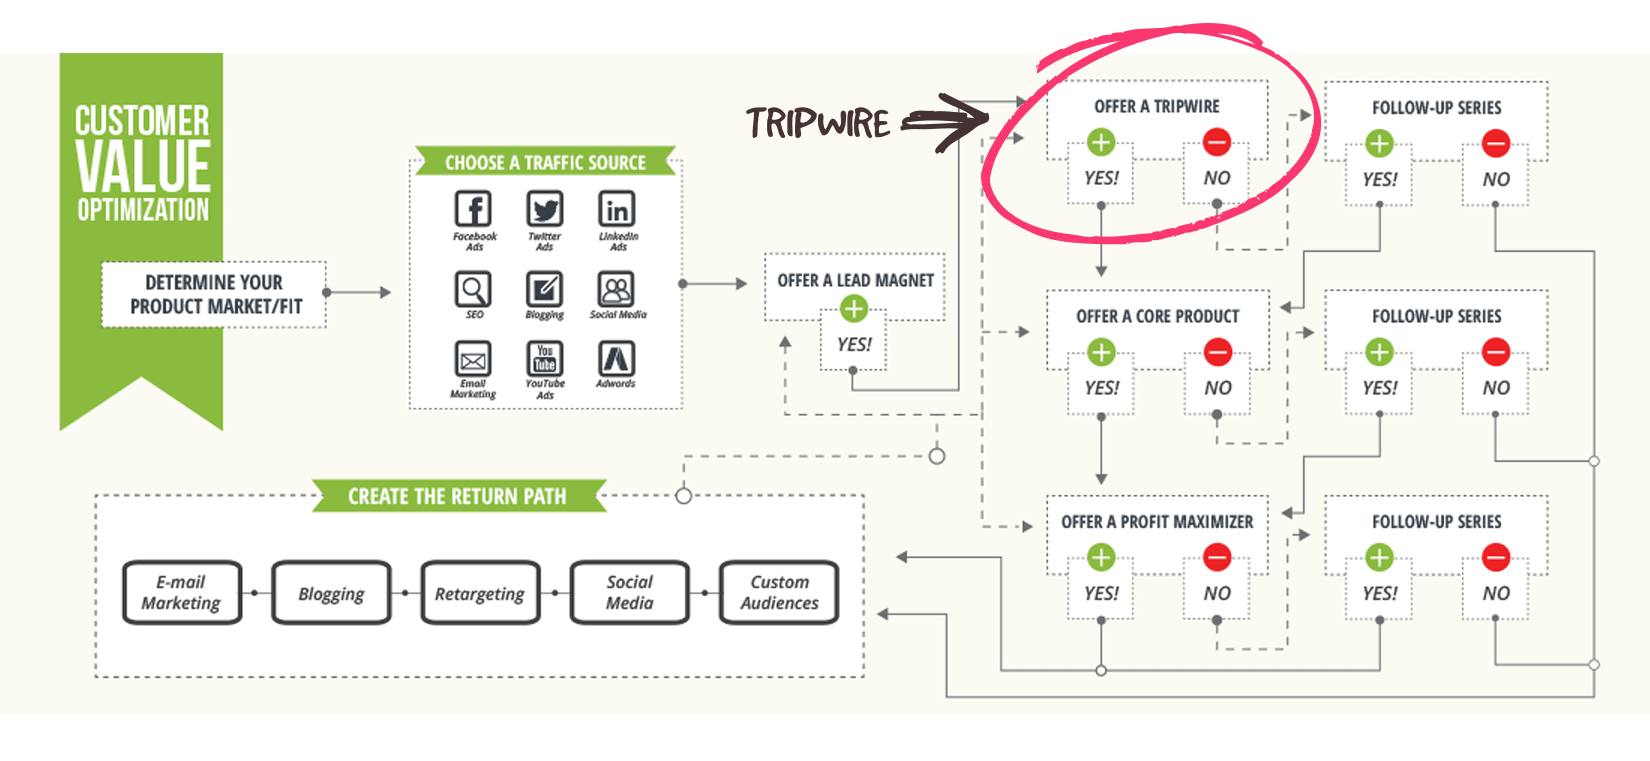 Tripwire from Digital Marketer